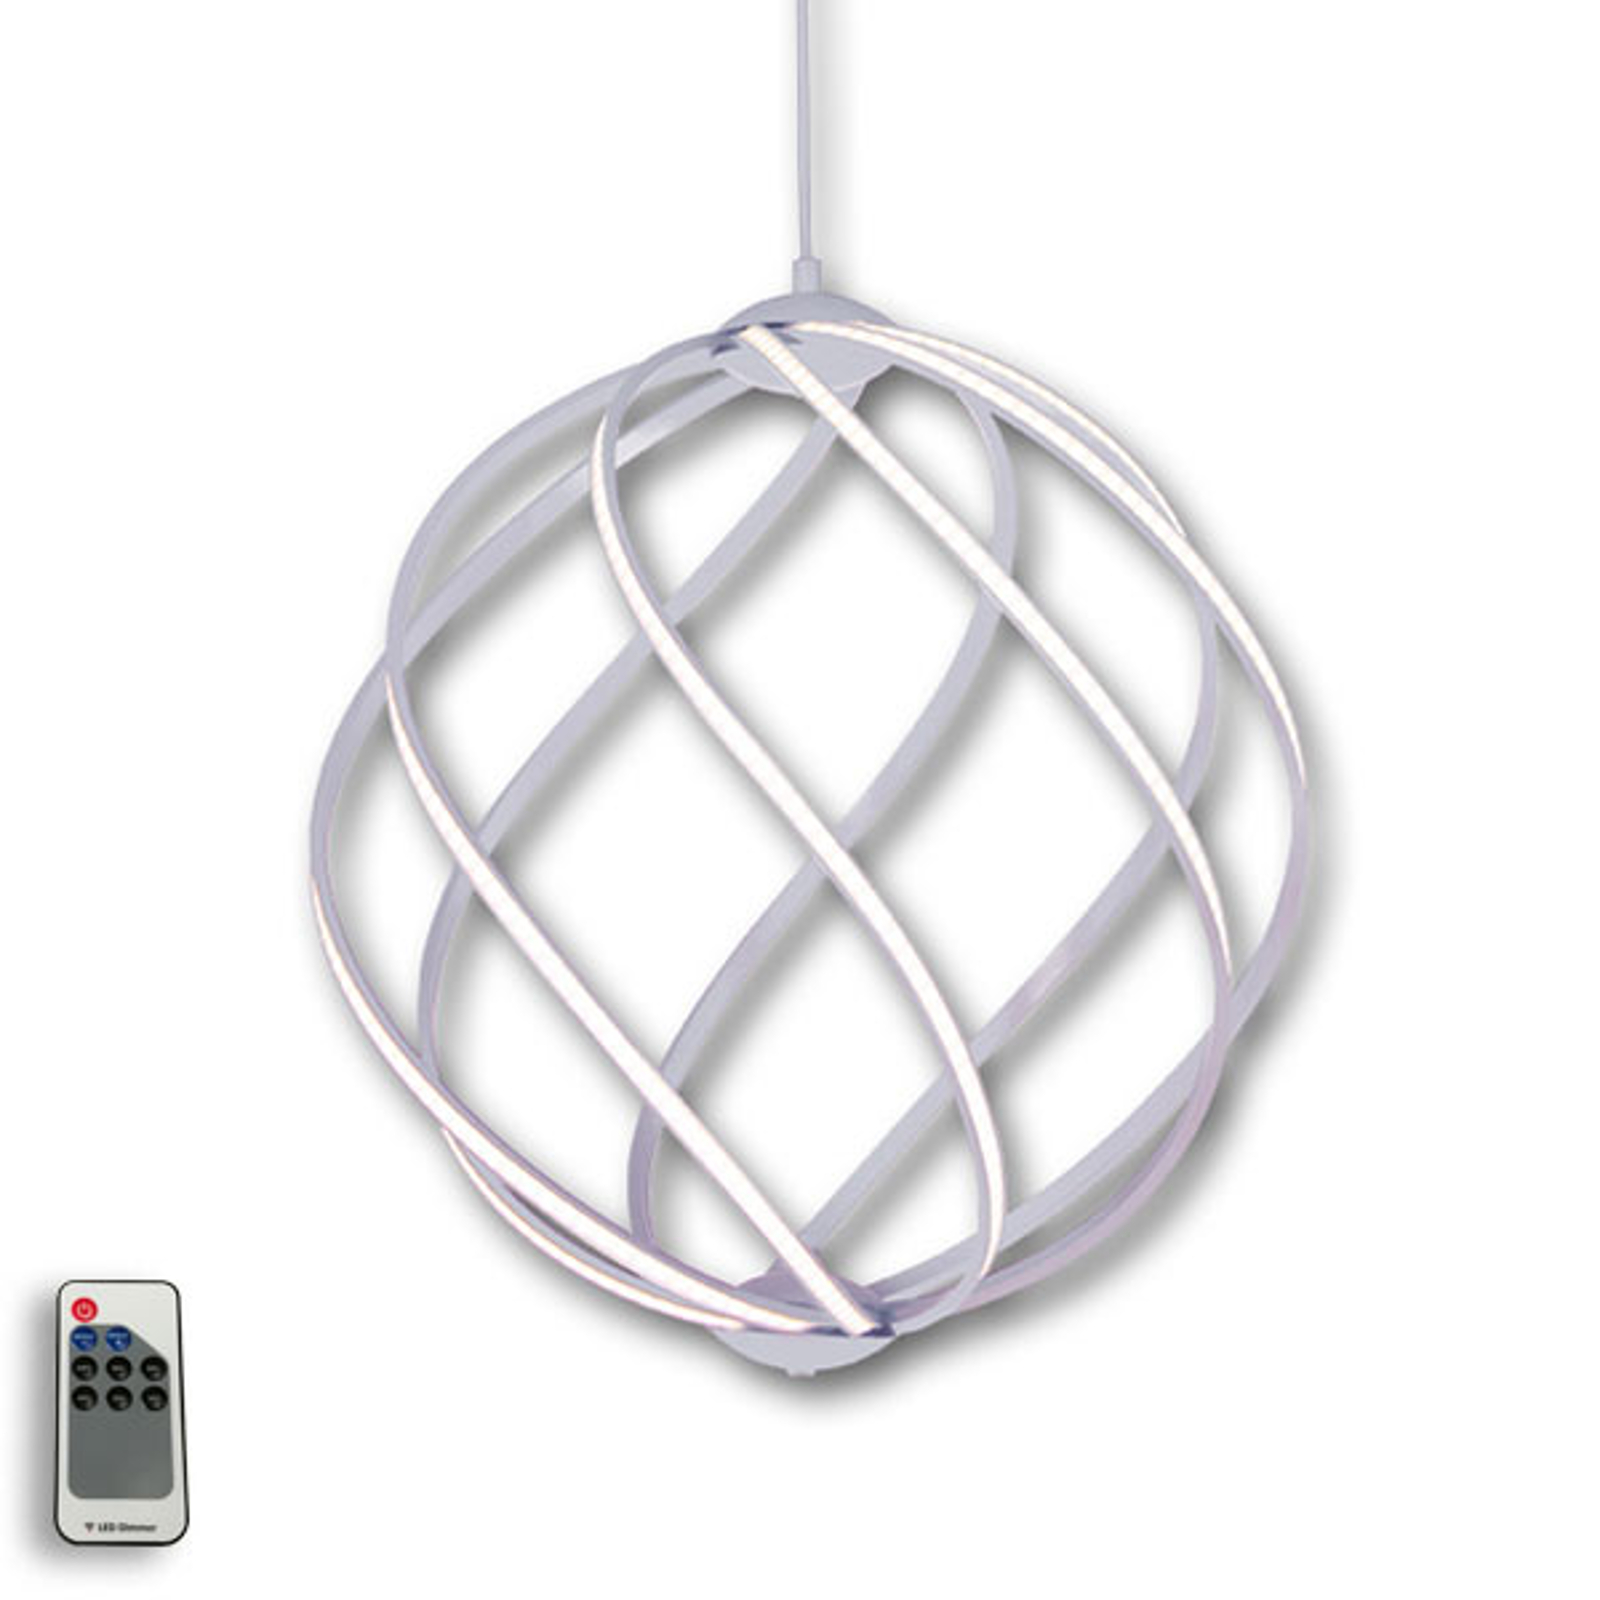 Suspension LED Twist élégante, aluminium Ø 46 cm